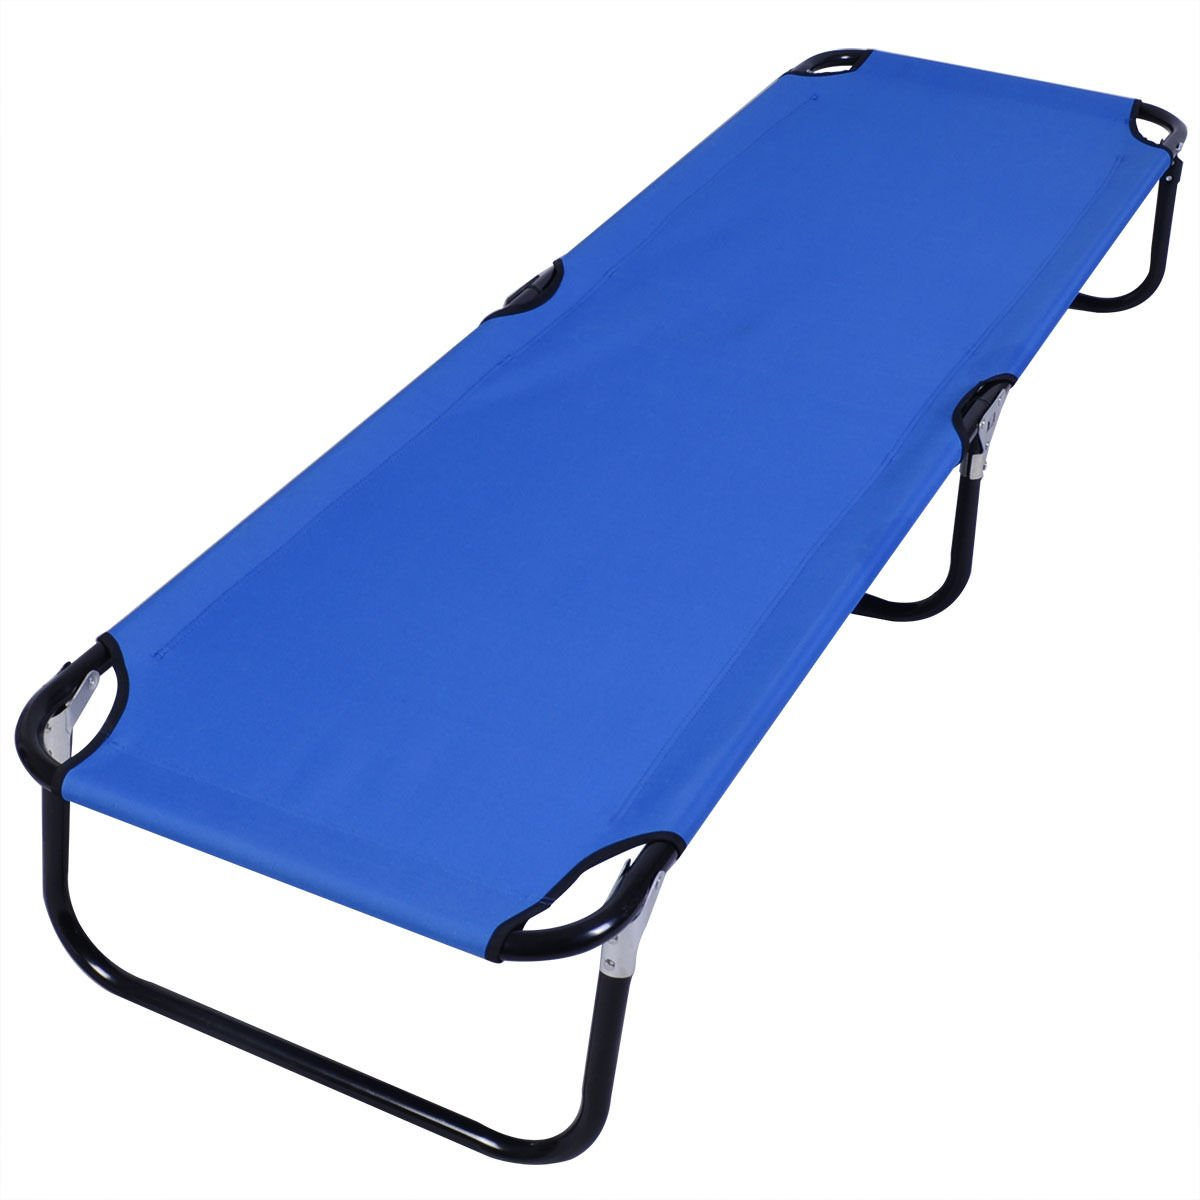 Generic Blue Folding Camping Bed Outdoor Portable Military Cot Sleeping Hiking Travel Easy To Carry And Store Super Sturdy Steel Frame Brand New